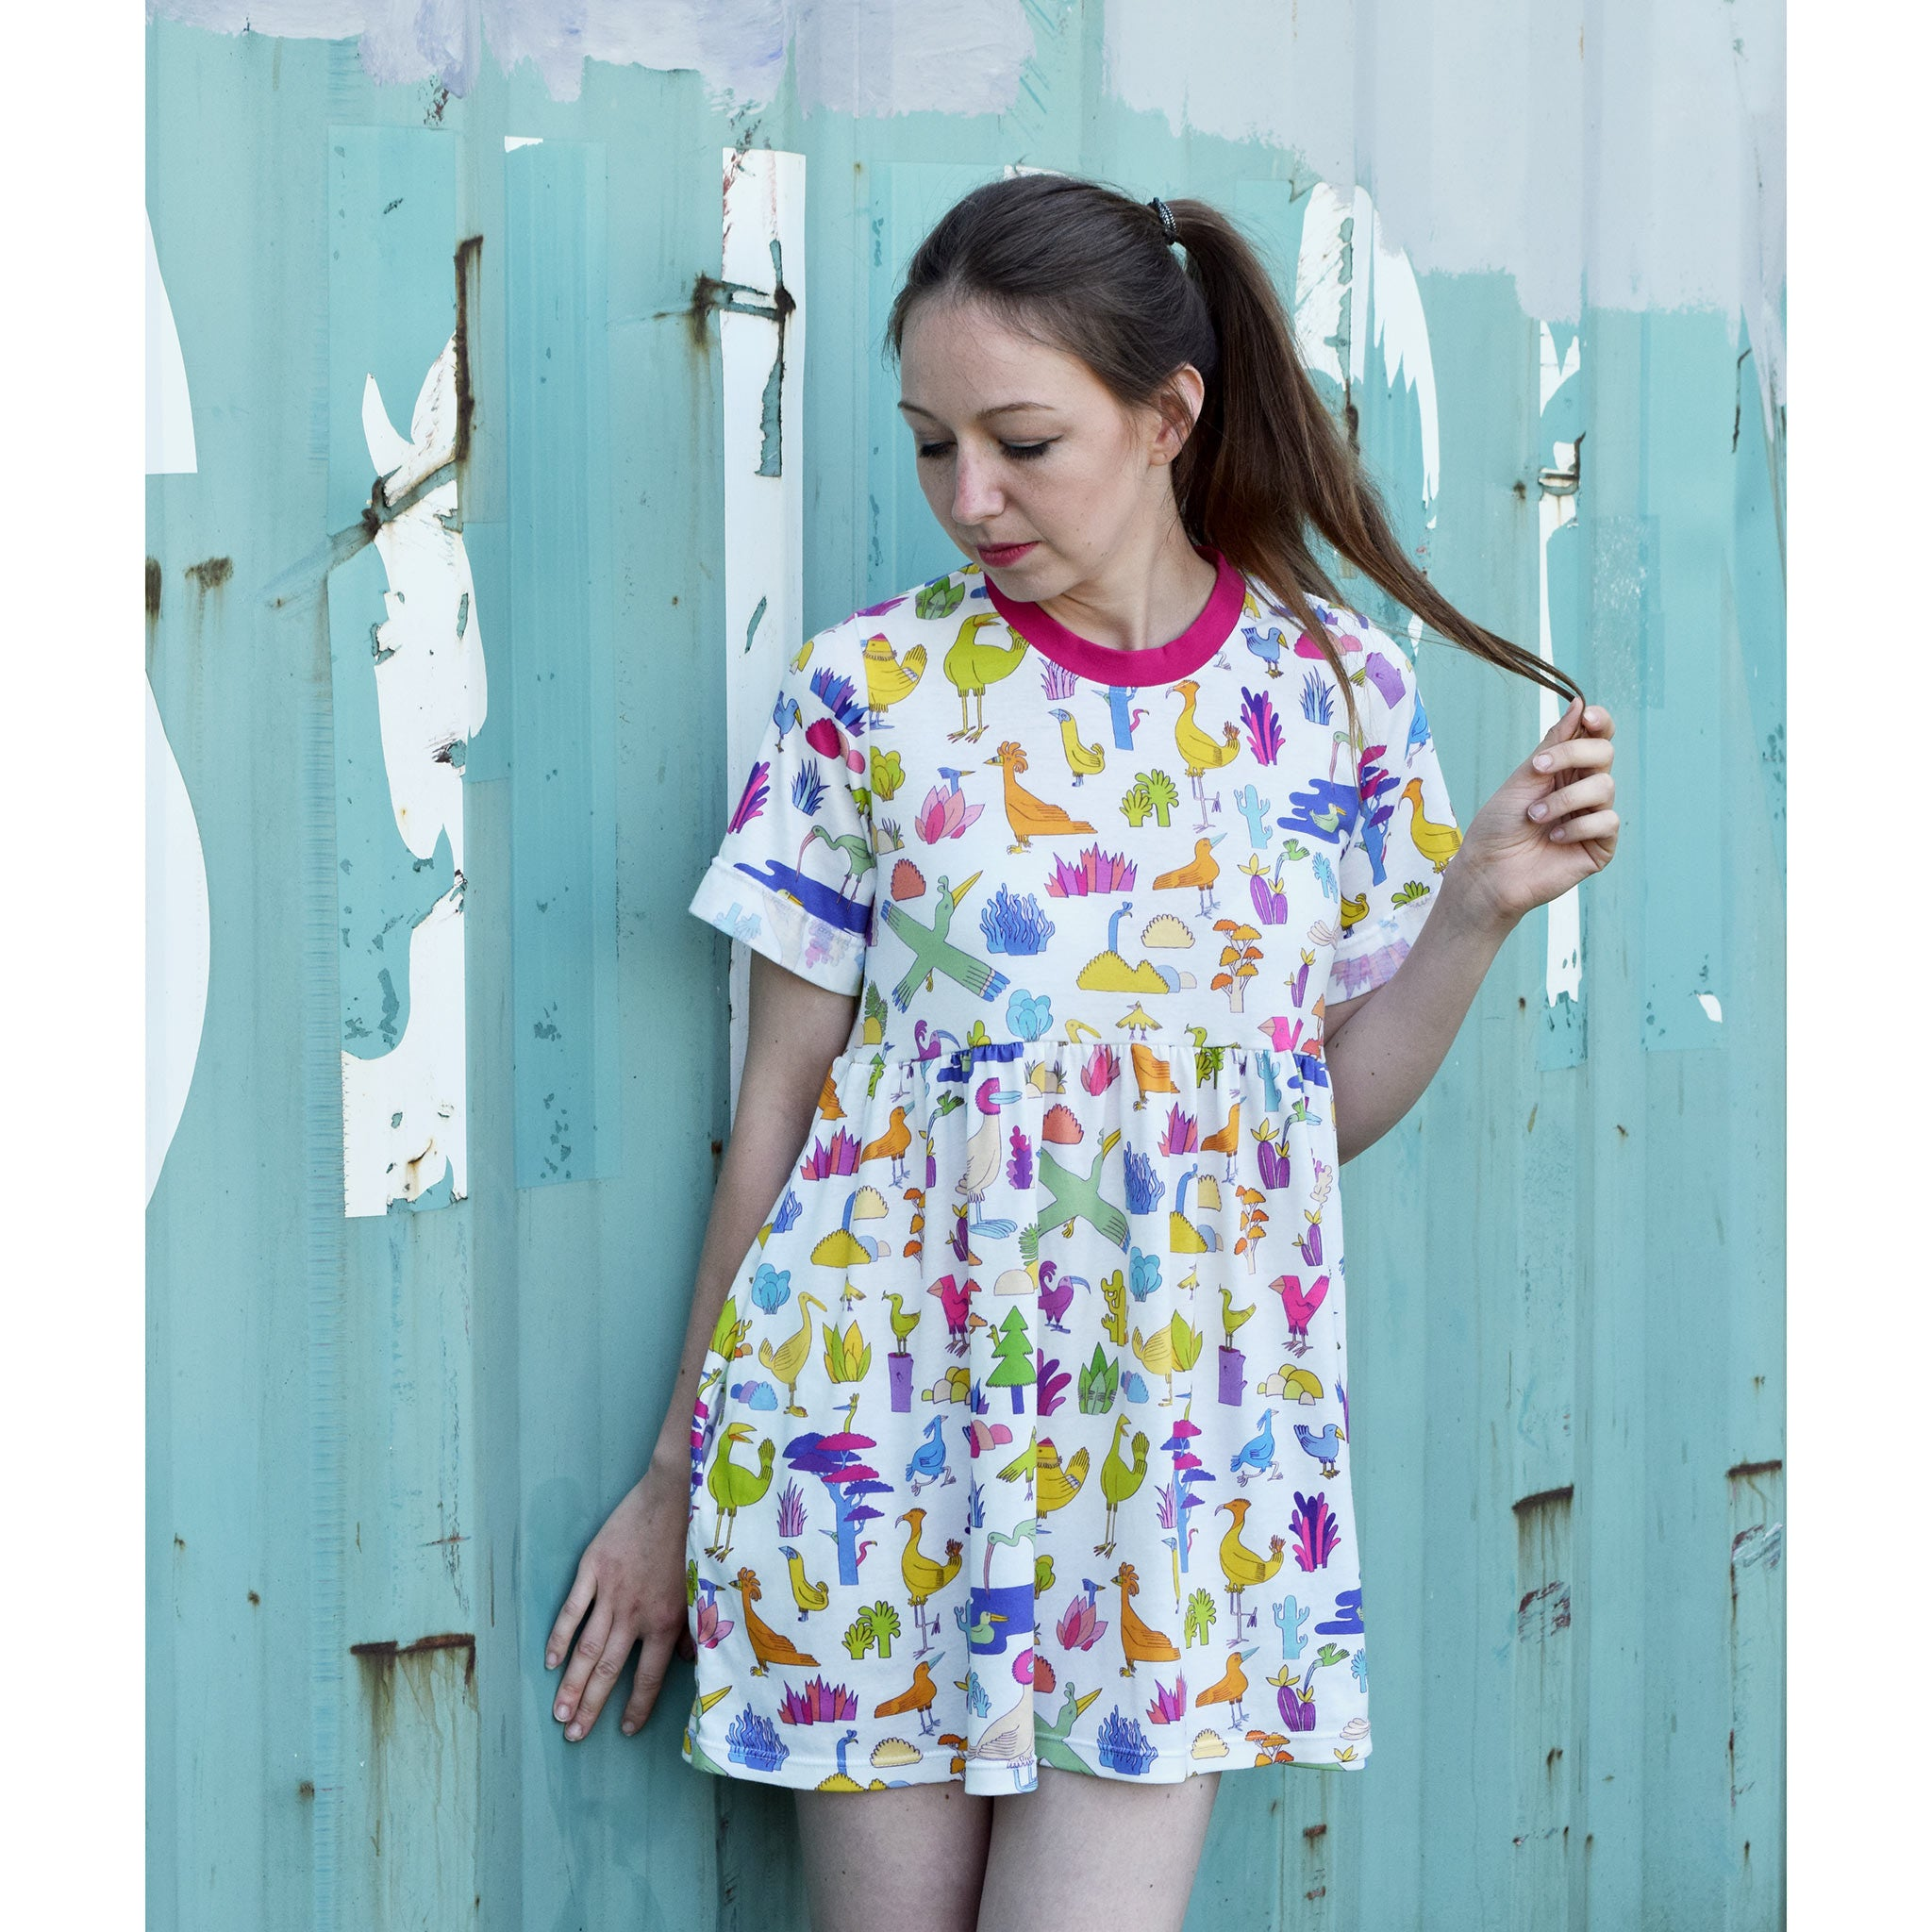 Super kawaii birds and cacti print T-shirt smock dress by indie label YUK FUN